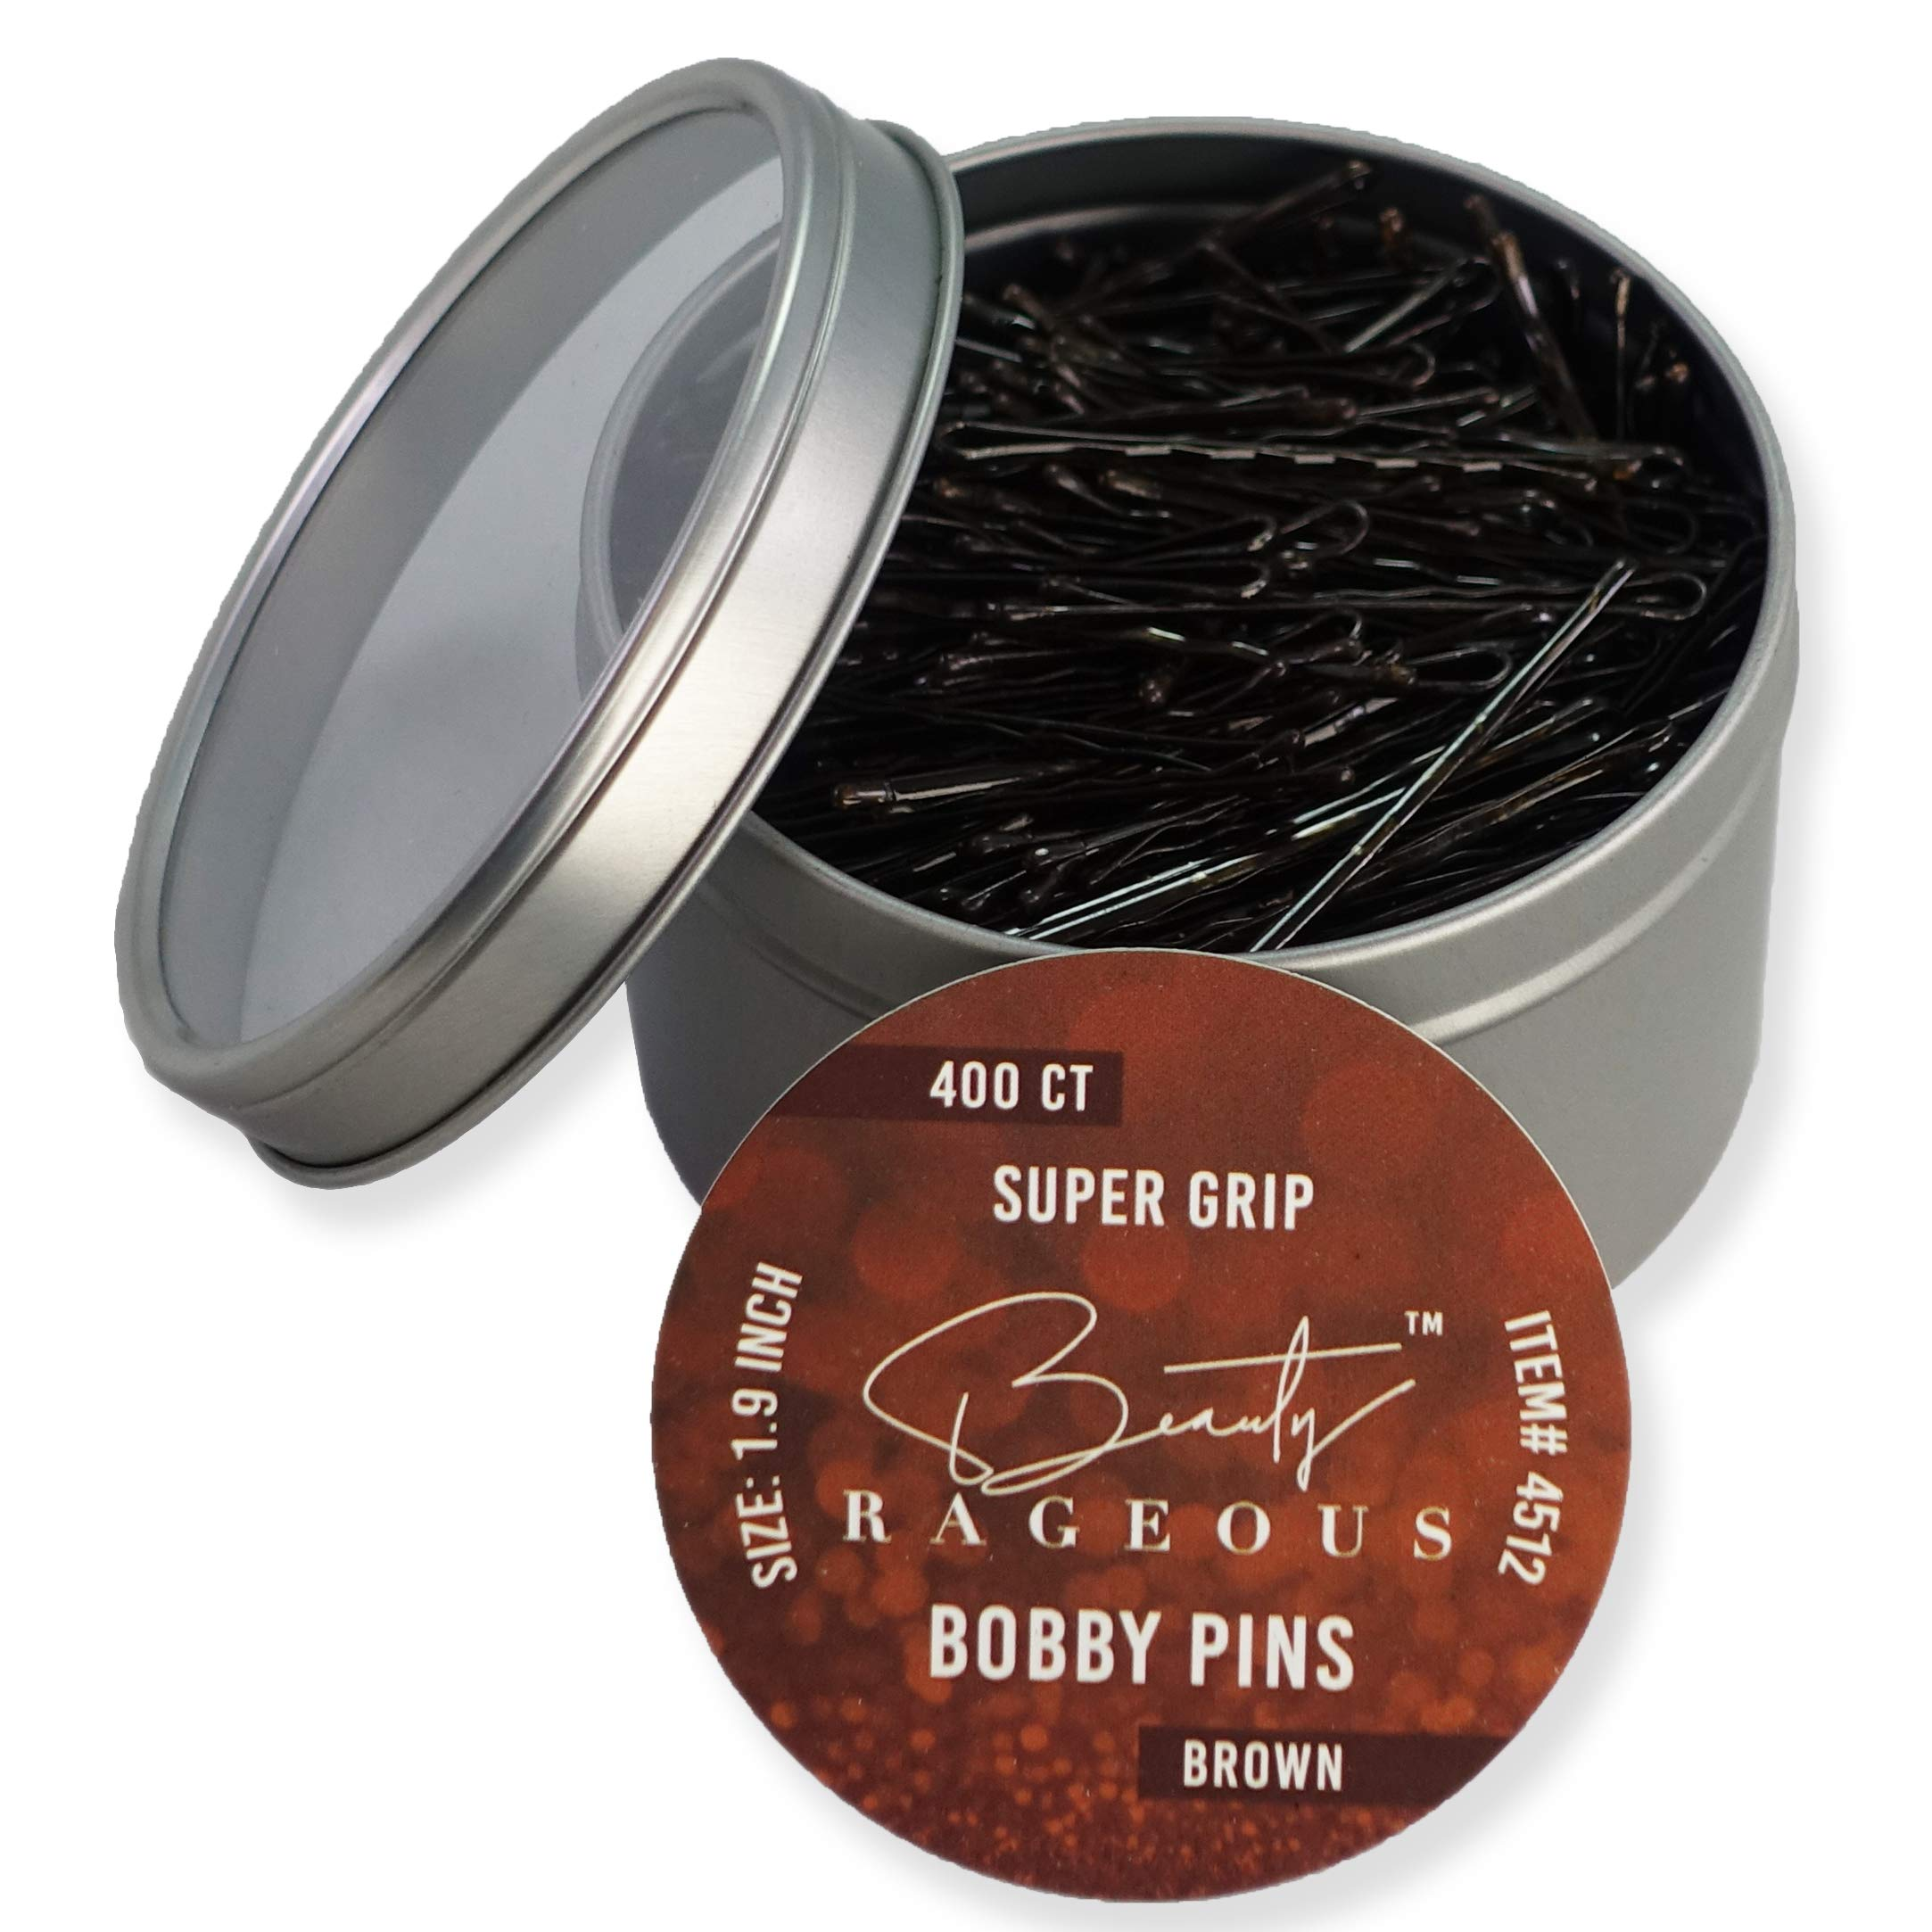 Super Grip Brown Bobby Pins - 400 Ct - Handy Reusable Tin by Beauty Rageous